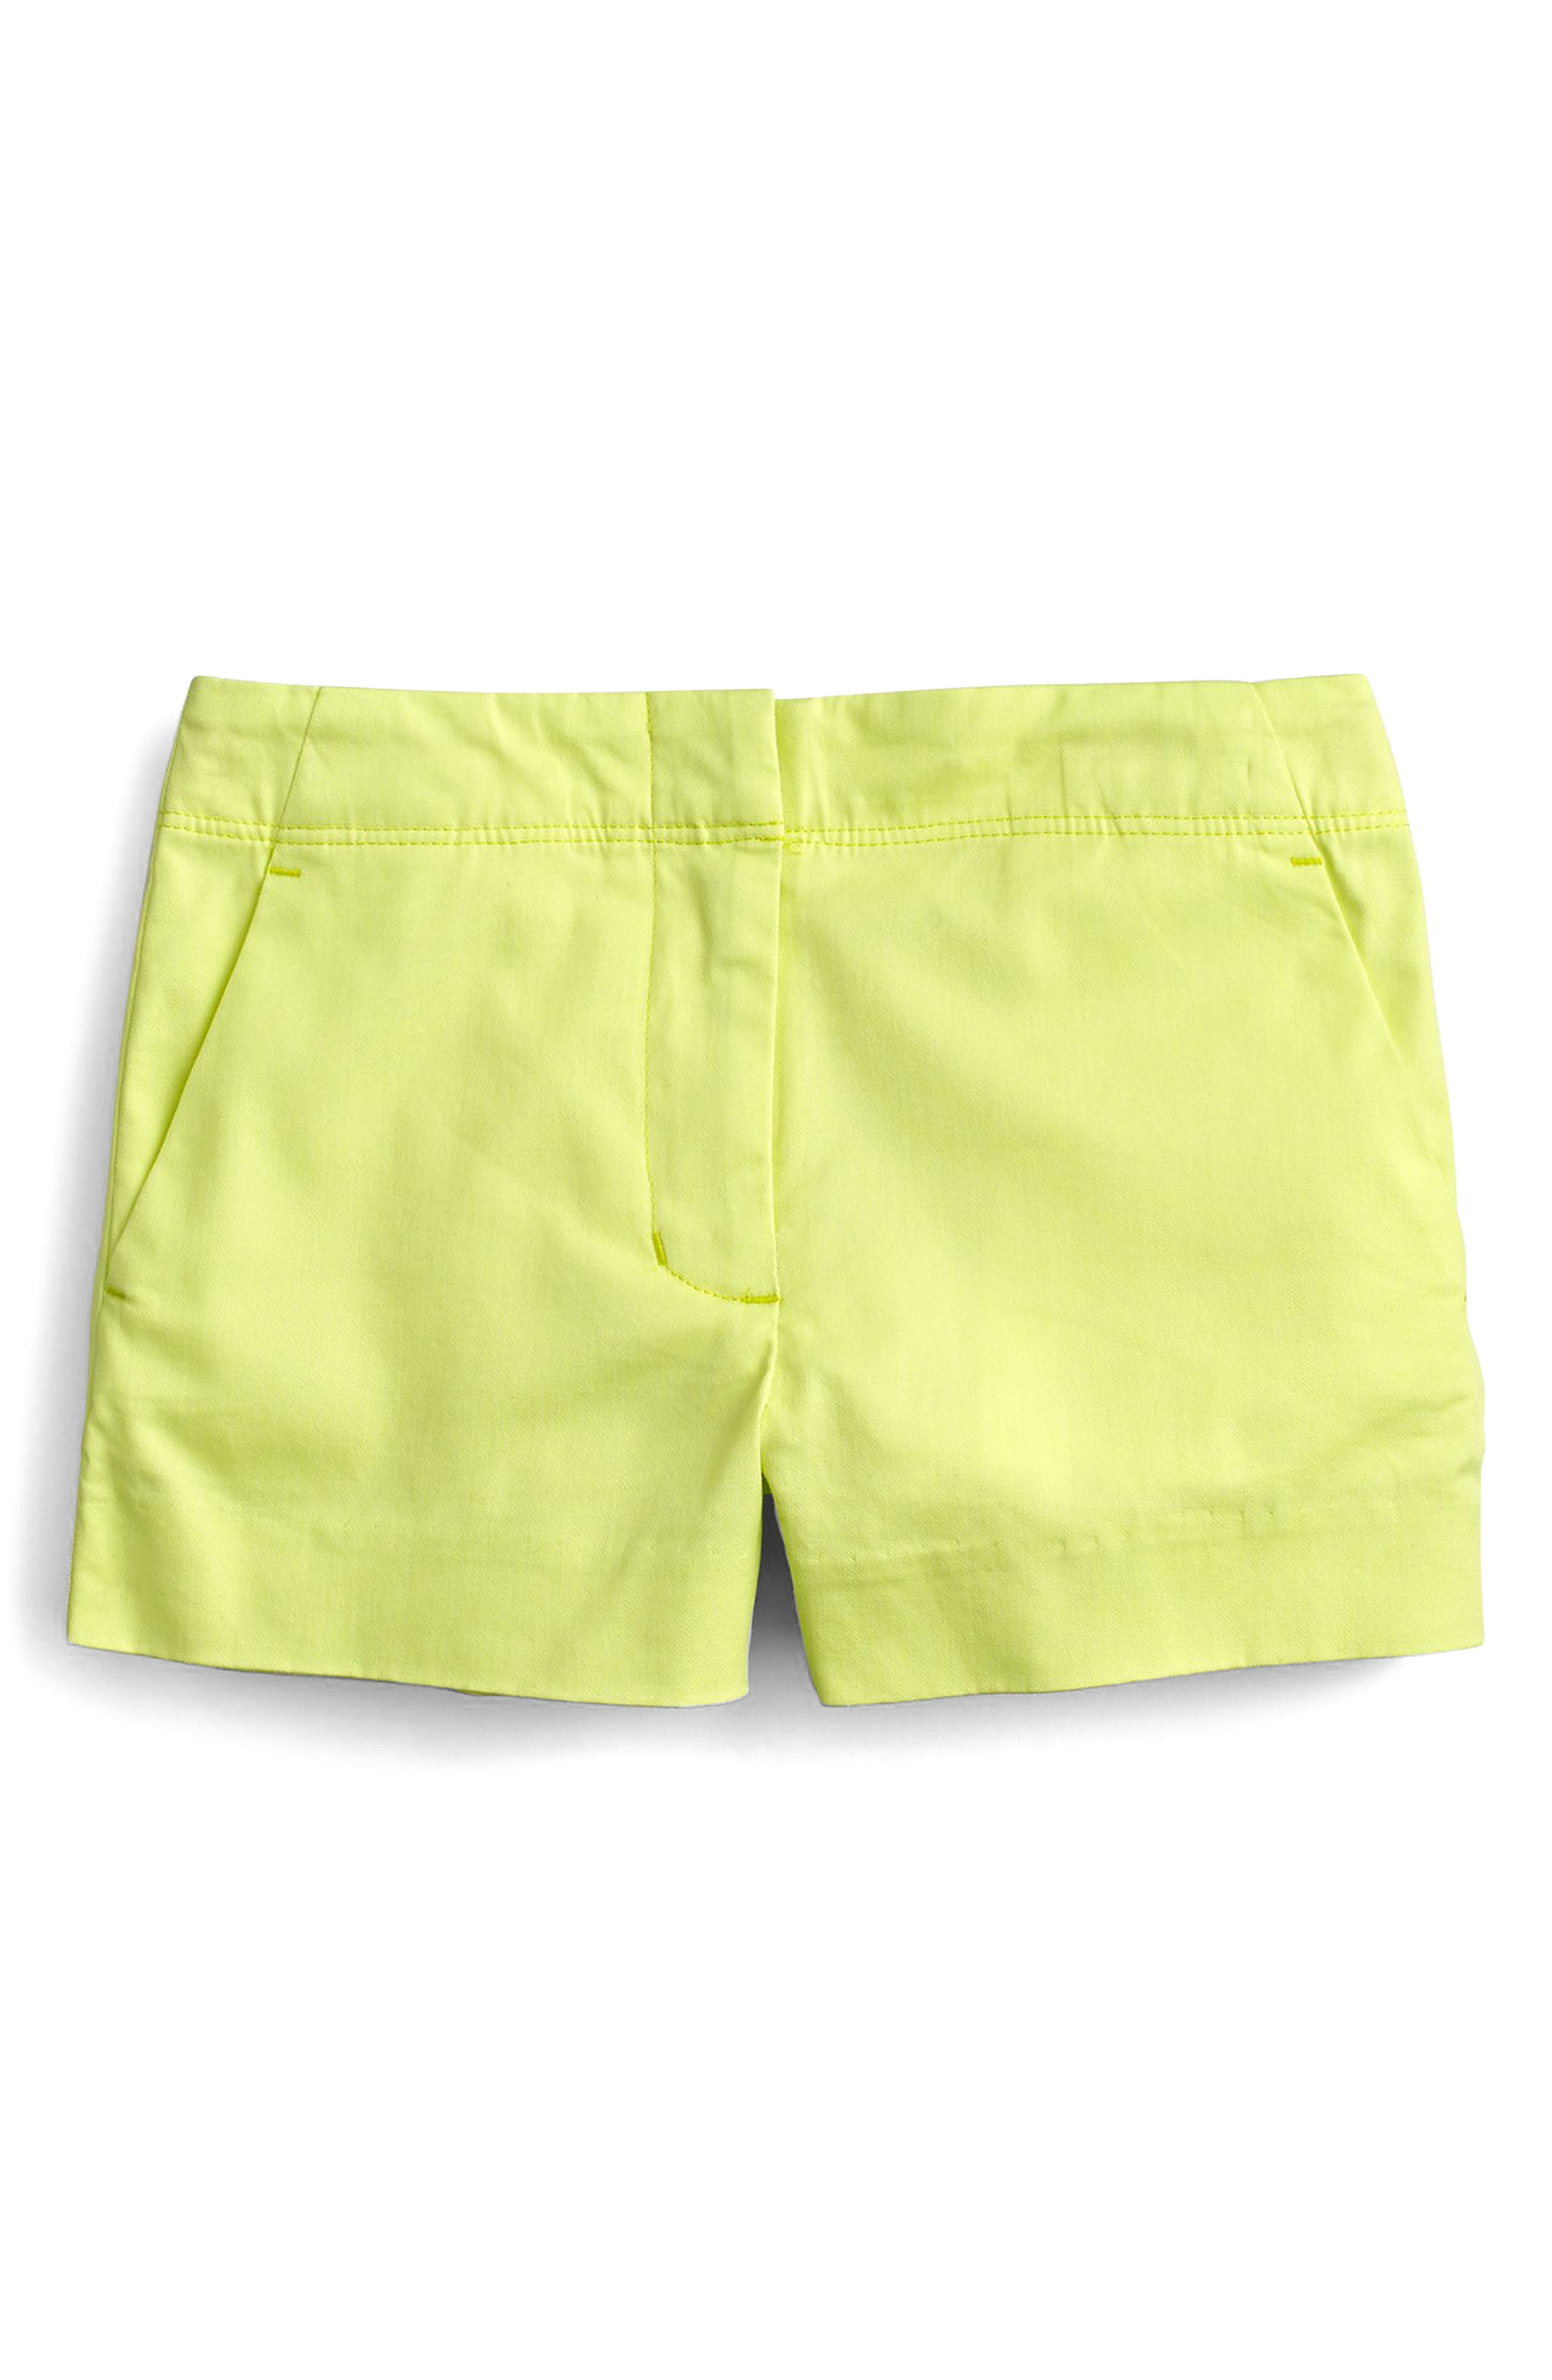 Frankie Stretch Cotton Shorts,                         Main,                         color, Neon Citron